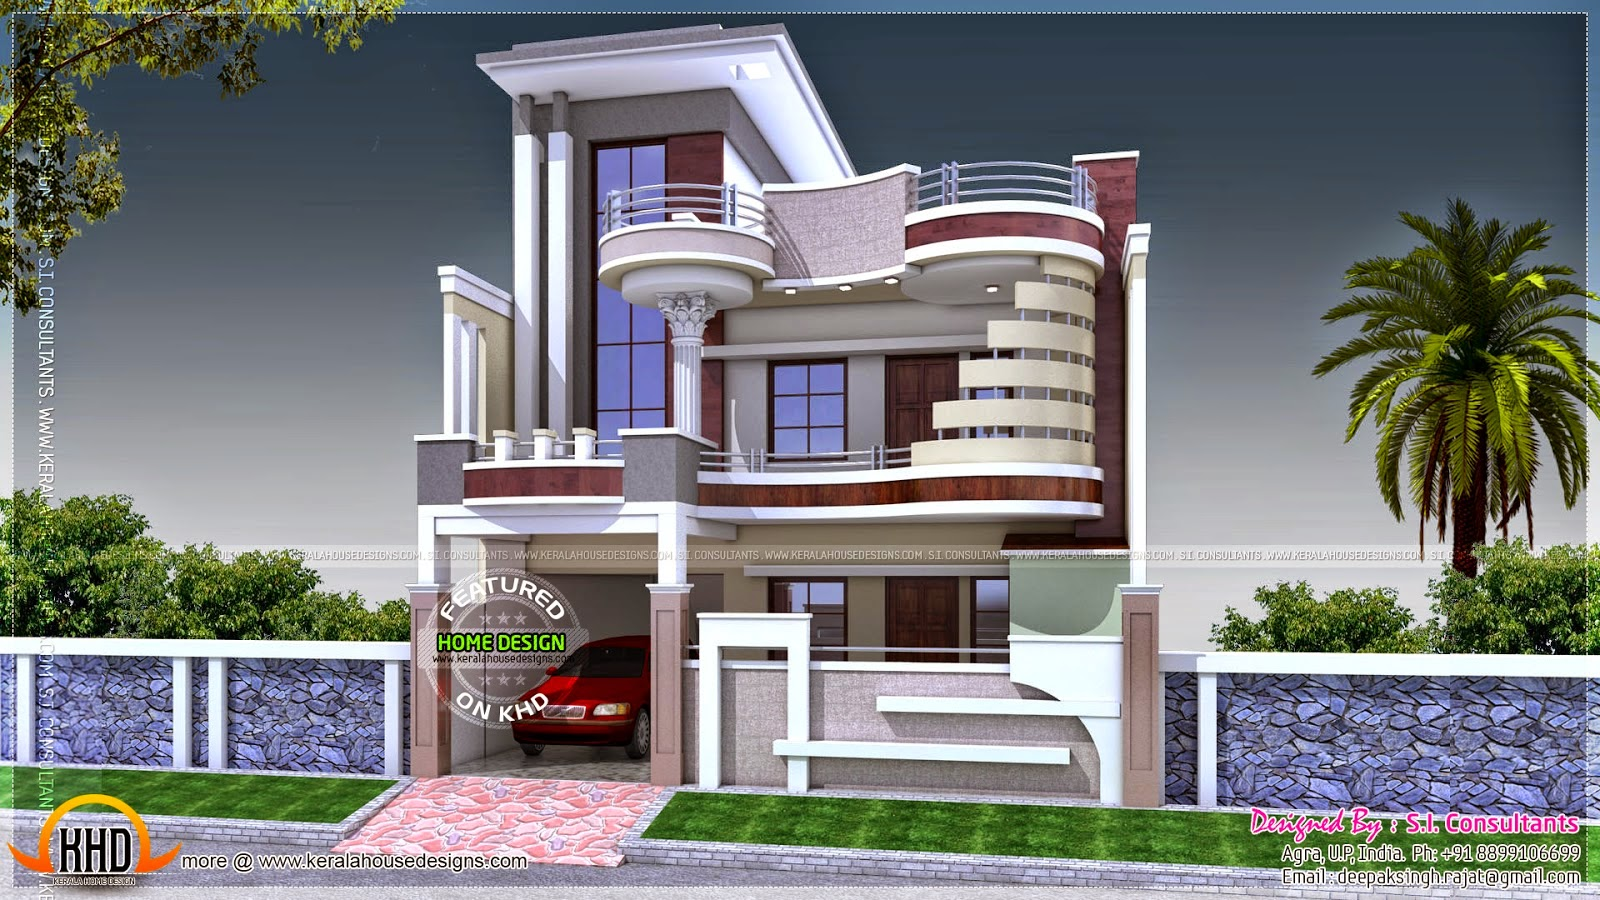 Tropicalizer indian house design Indian modern home design images